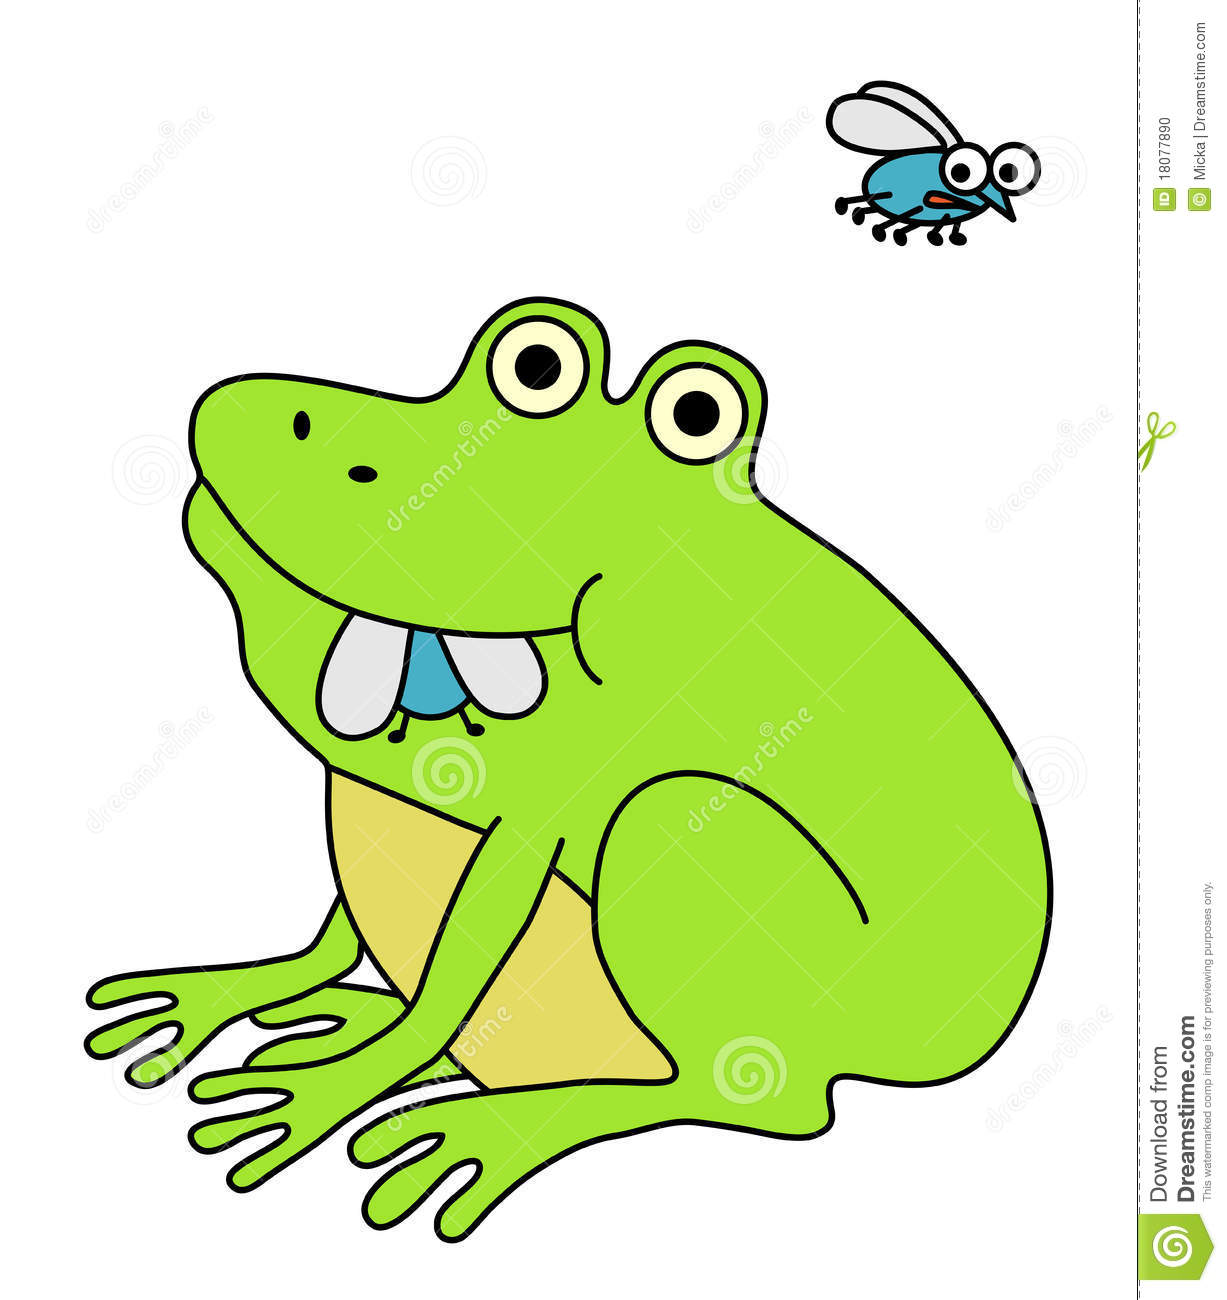 Frog Eating Fat Fly Stock Photo - Image: 18077890